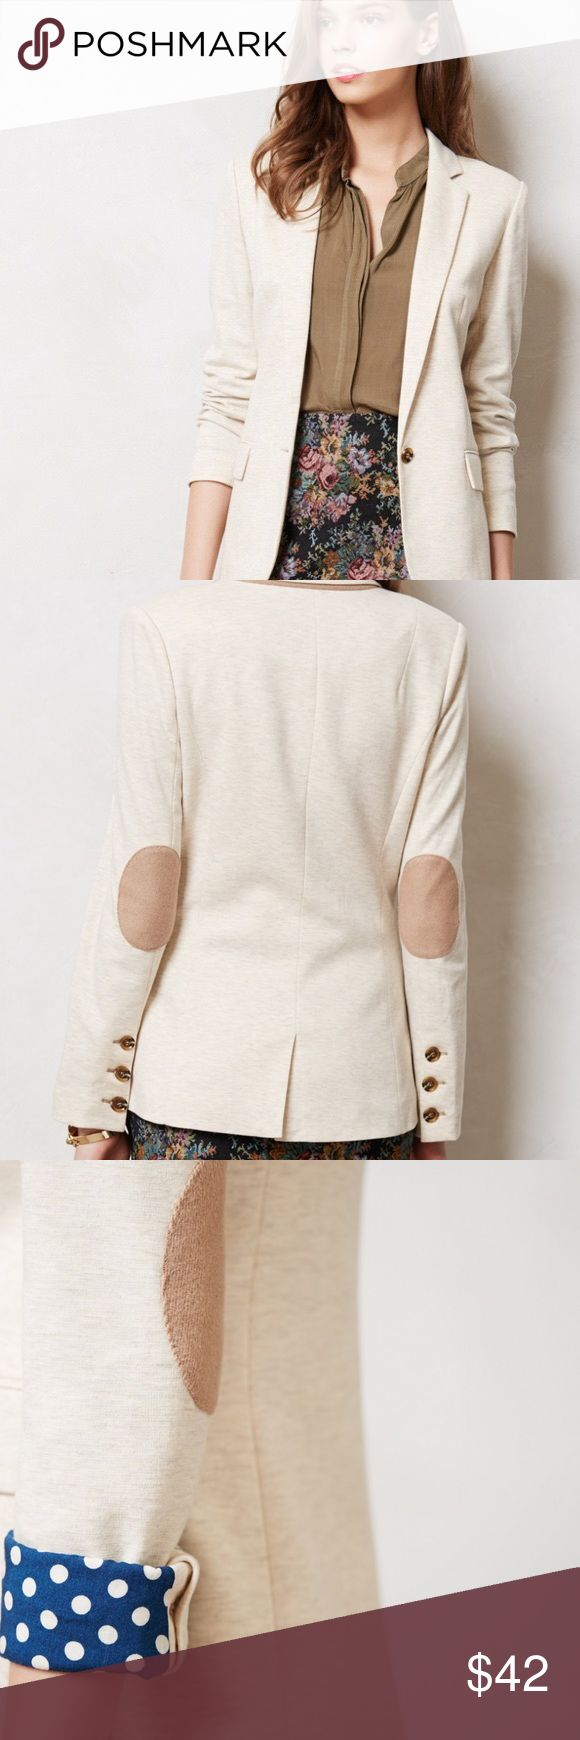 """Anthropologie Cartonnier Dotside Natural Blazer Gorgeous Cartonnier Anthropologie Dotside Blazer in a shade of cream """"natural."""" This jacket is one of a kind and goes well with so many different outfits. You can dress it up or down. Size extra small in good condition. There is some slight color bleed on the collar but it's hard to notice. Amazing elbow patches and polka dot liner too!! Cute summertime professional wear! 25"""" long and 17"""" across the chest. Anthropologie Jackets & Coats Blazers"""